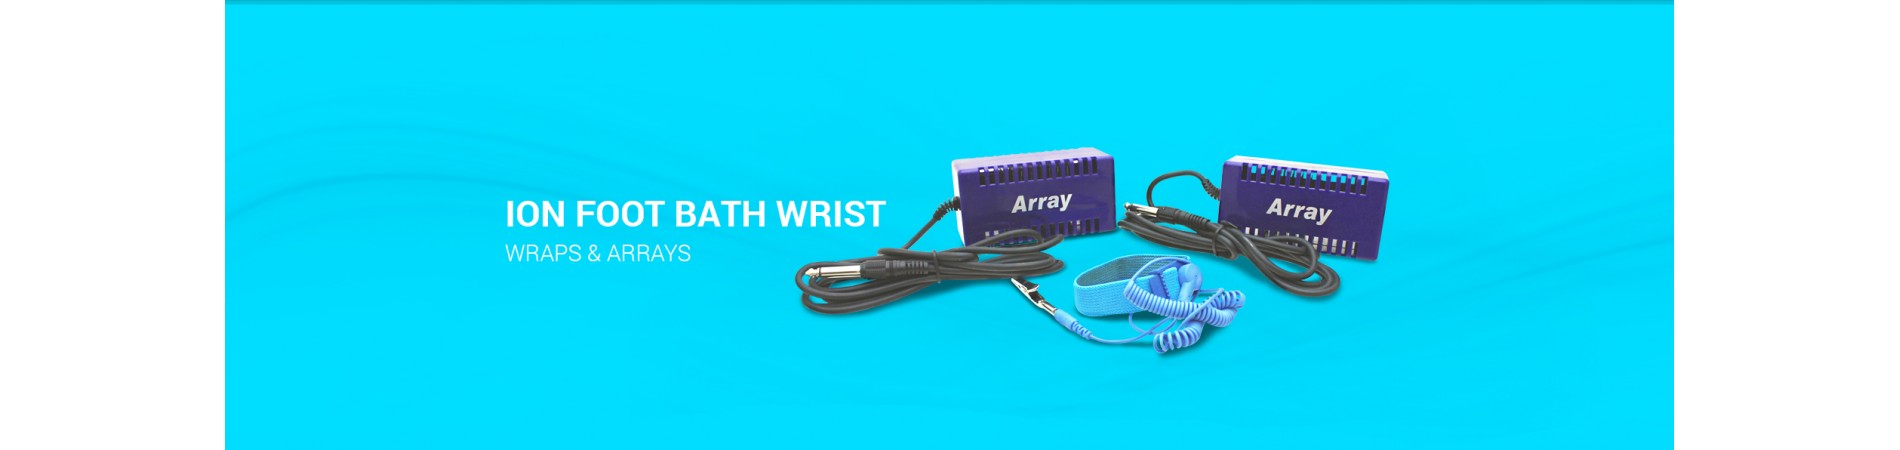 Ion Foot Bath Wrist Wraps & Arrays